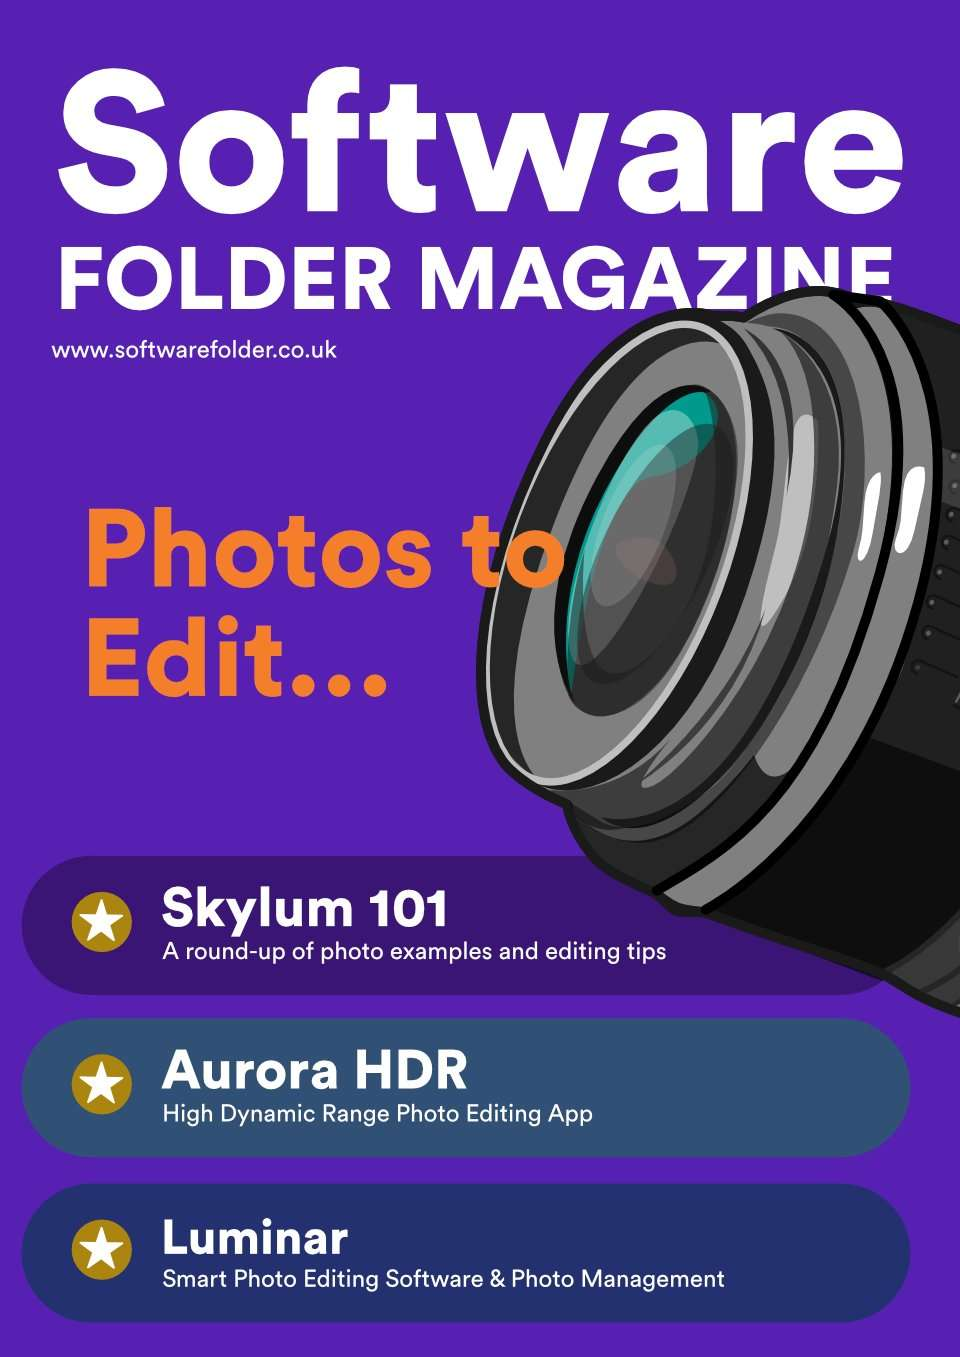 software-folder-magazine-photo-to-edit